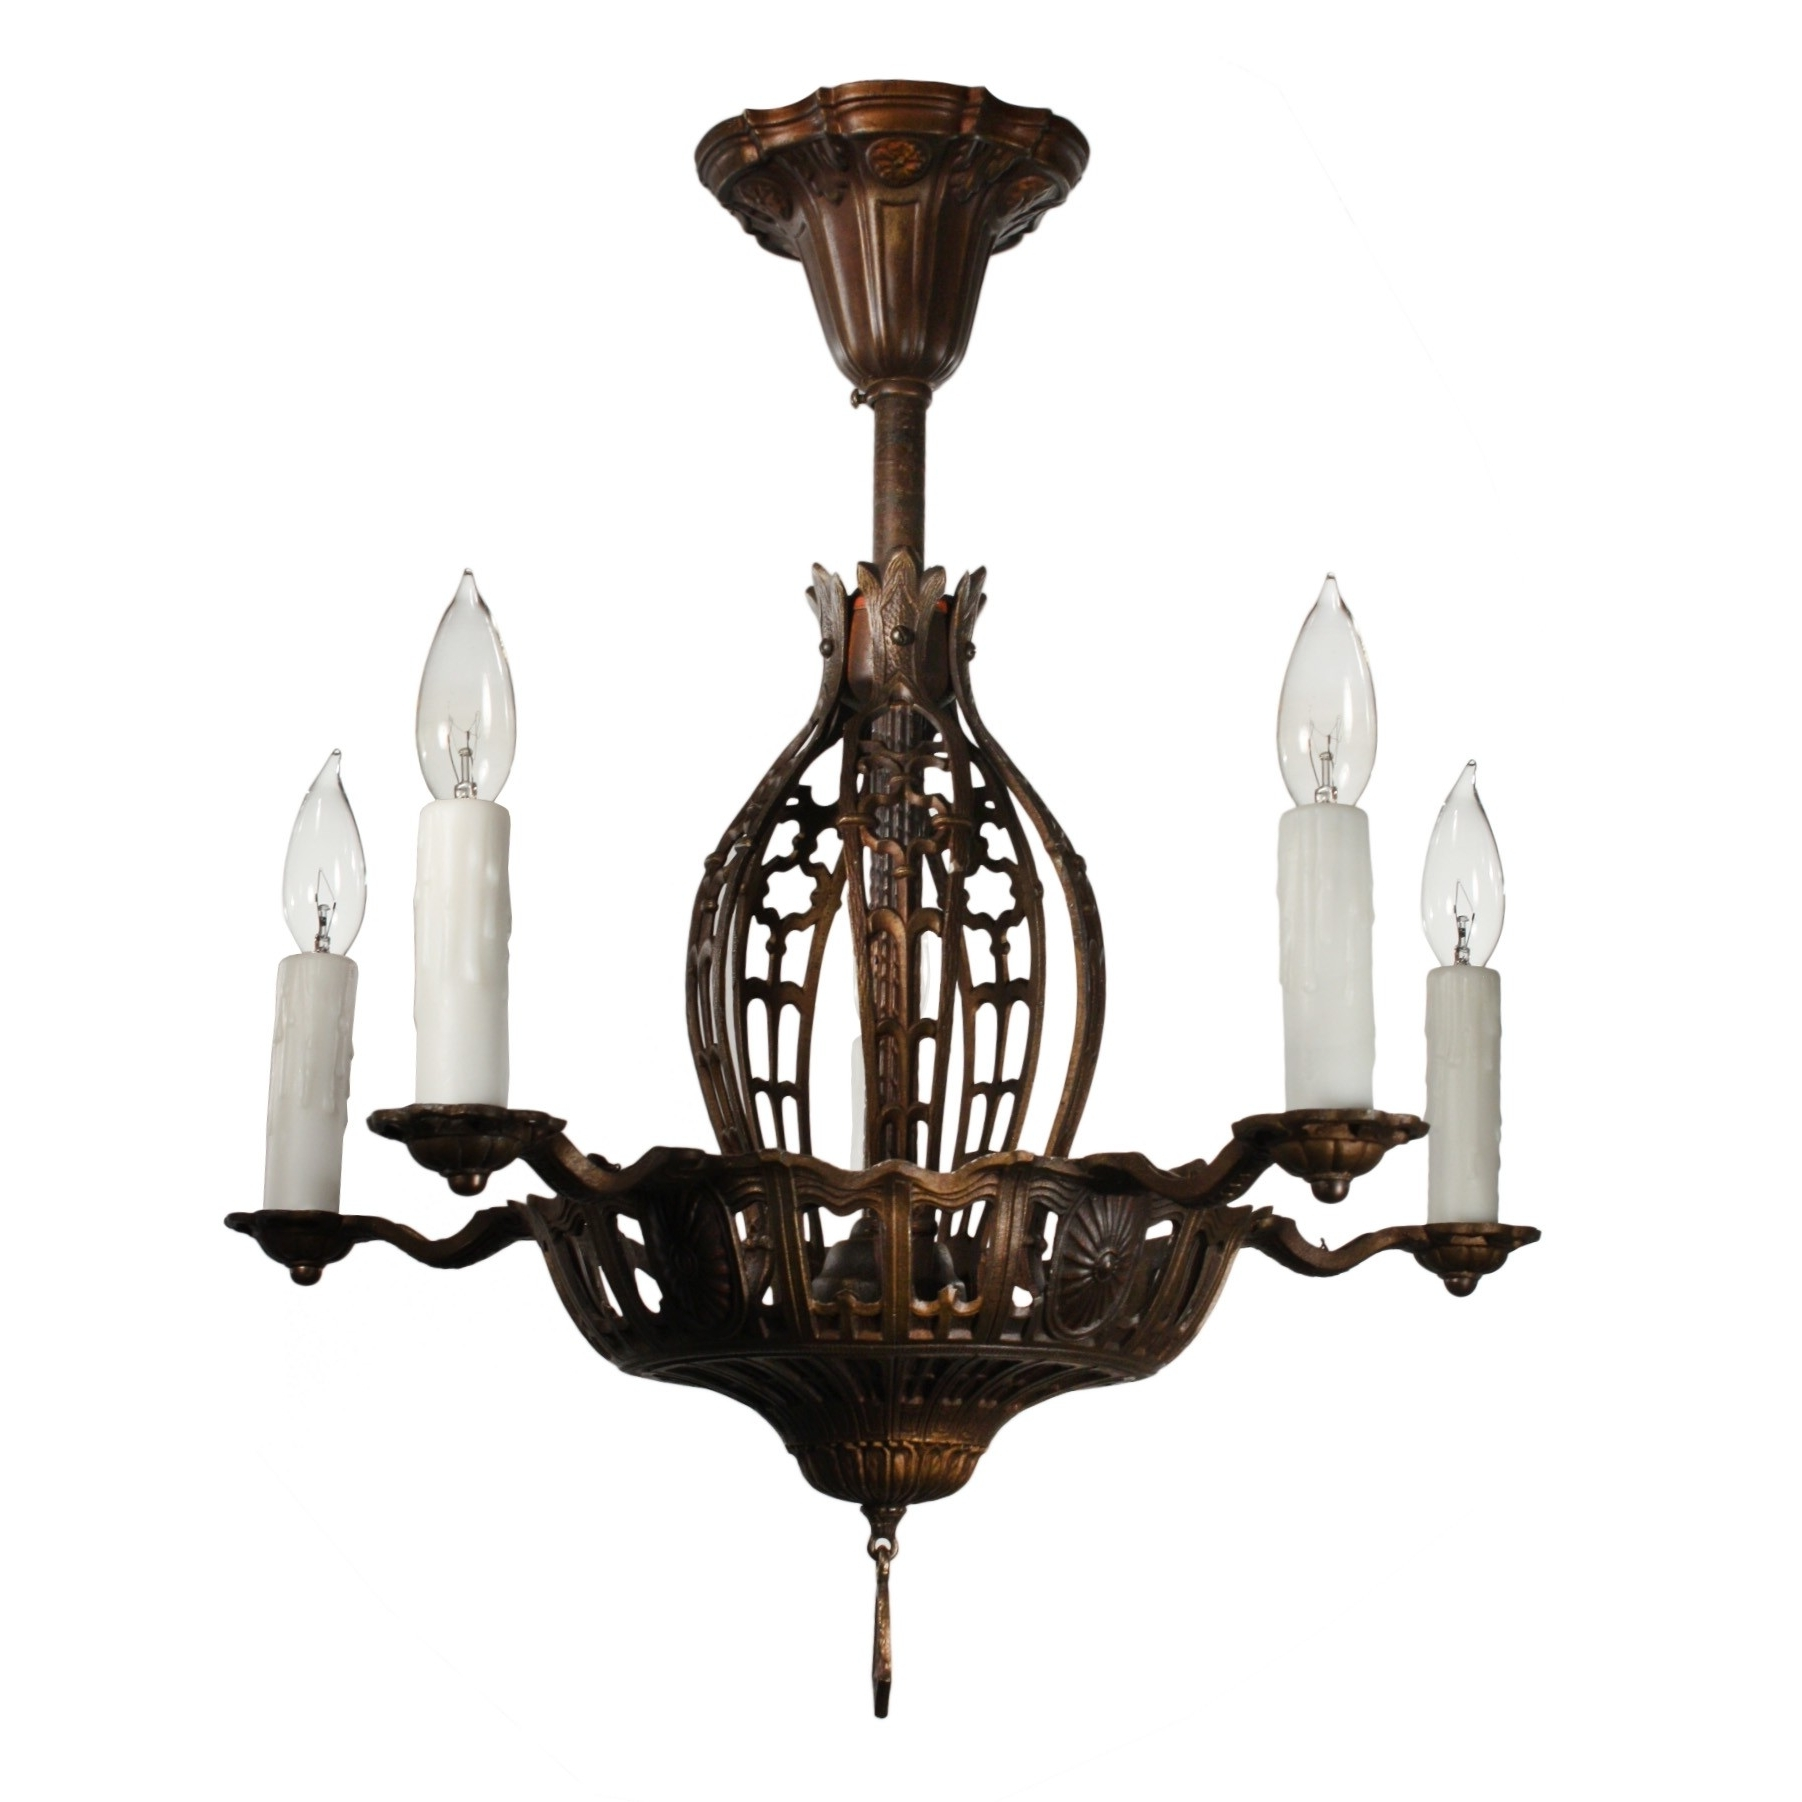 Flush Chandelier With Well Liked Antique Semi Flush Chandelier, Early 1900S – Preservation Station (View 13 of 15)